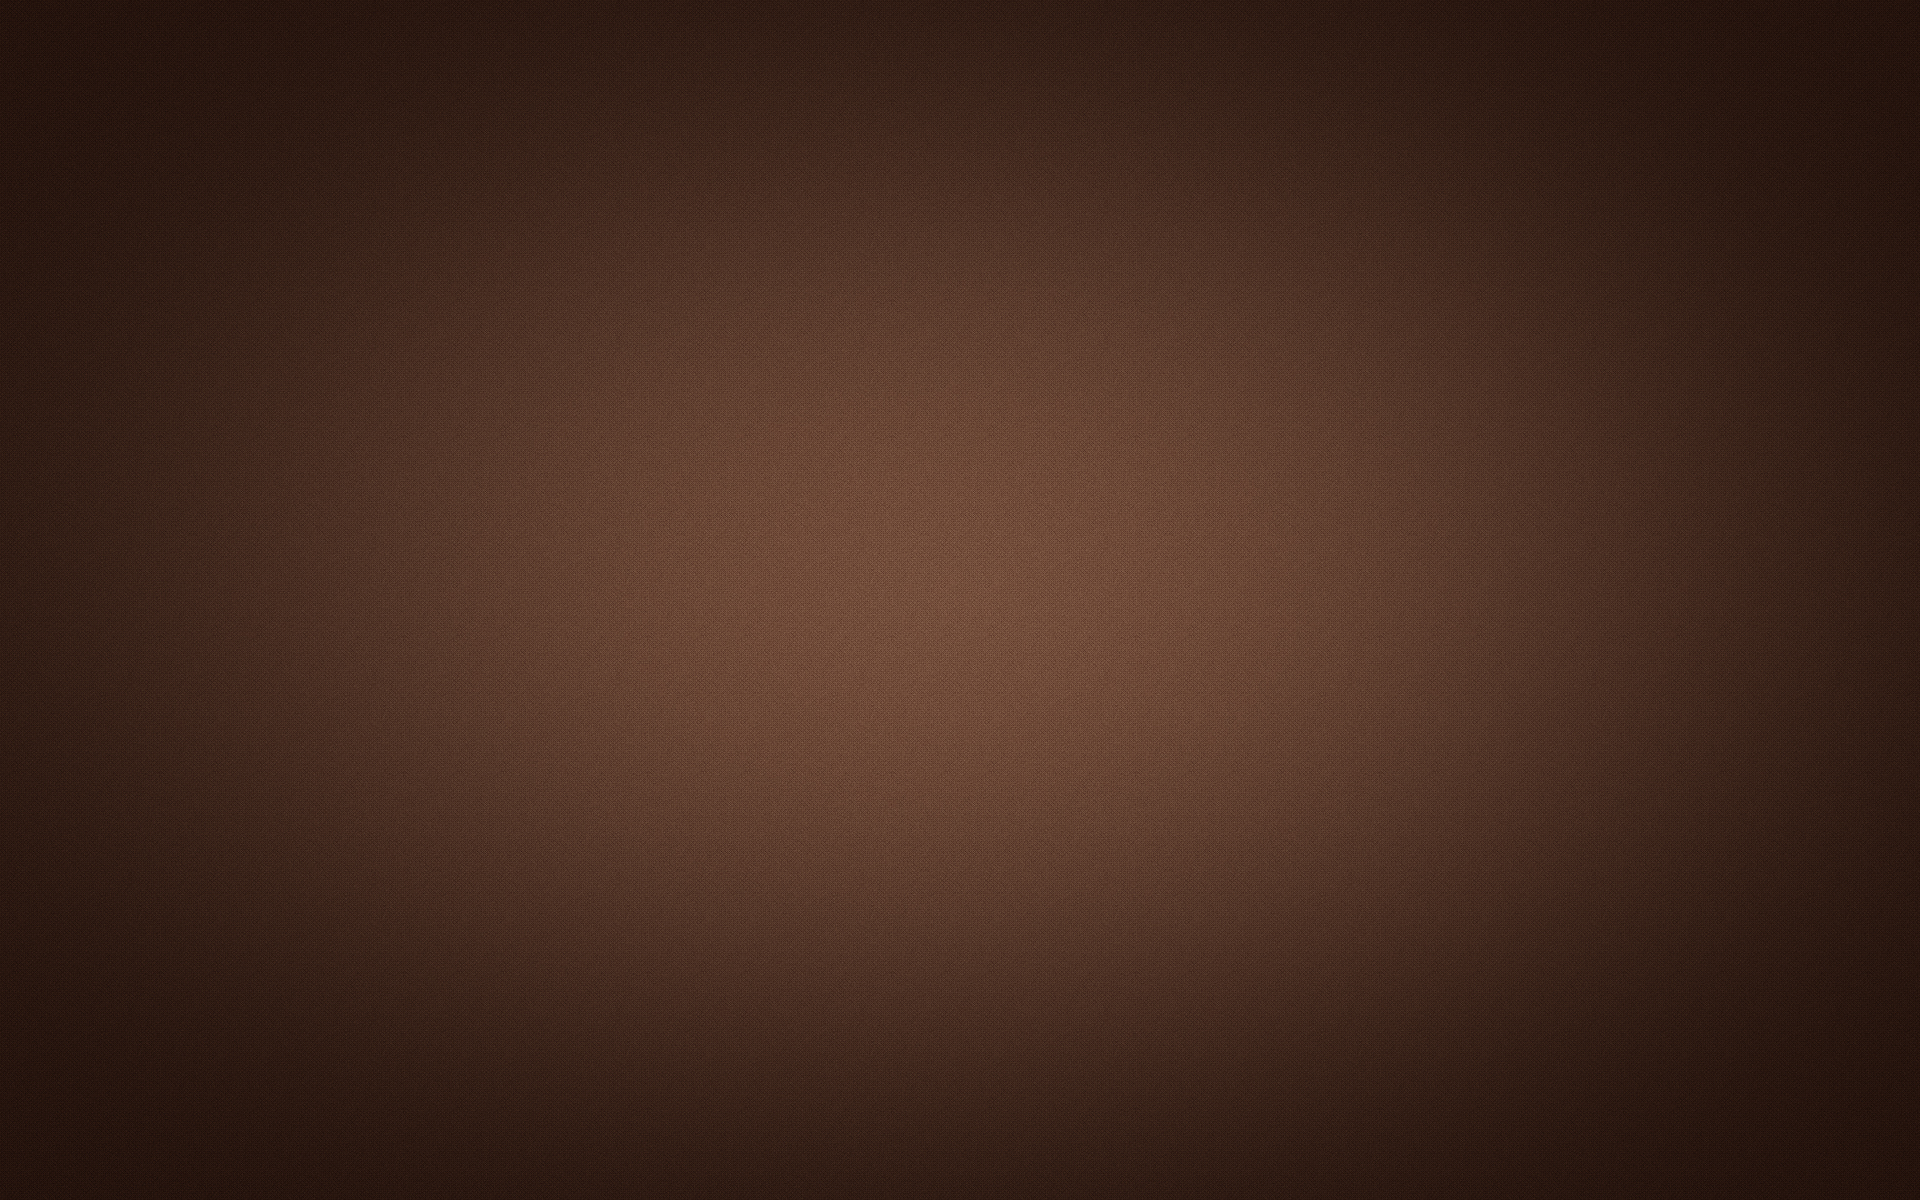 Brown background 18639 1920x1200 px - Photo of wallpaper ...